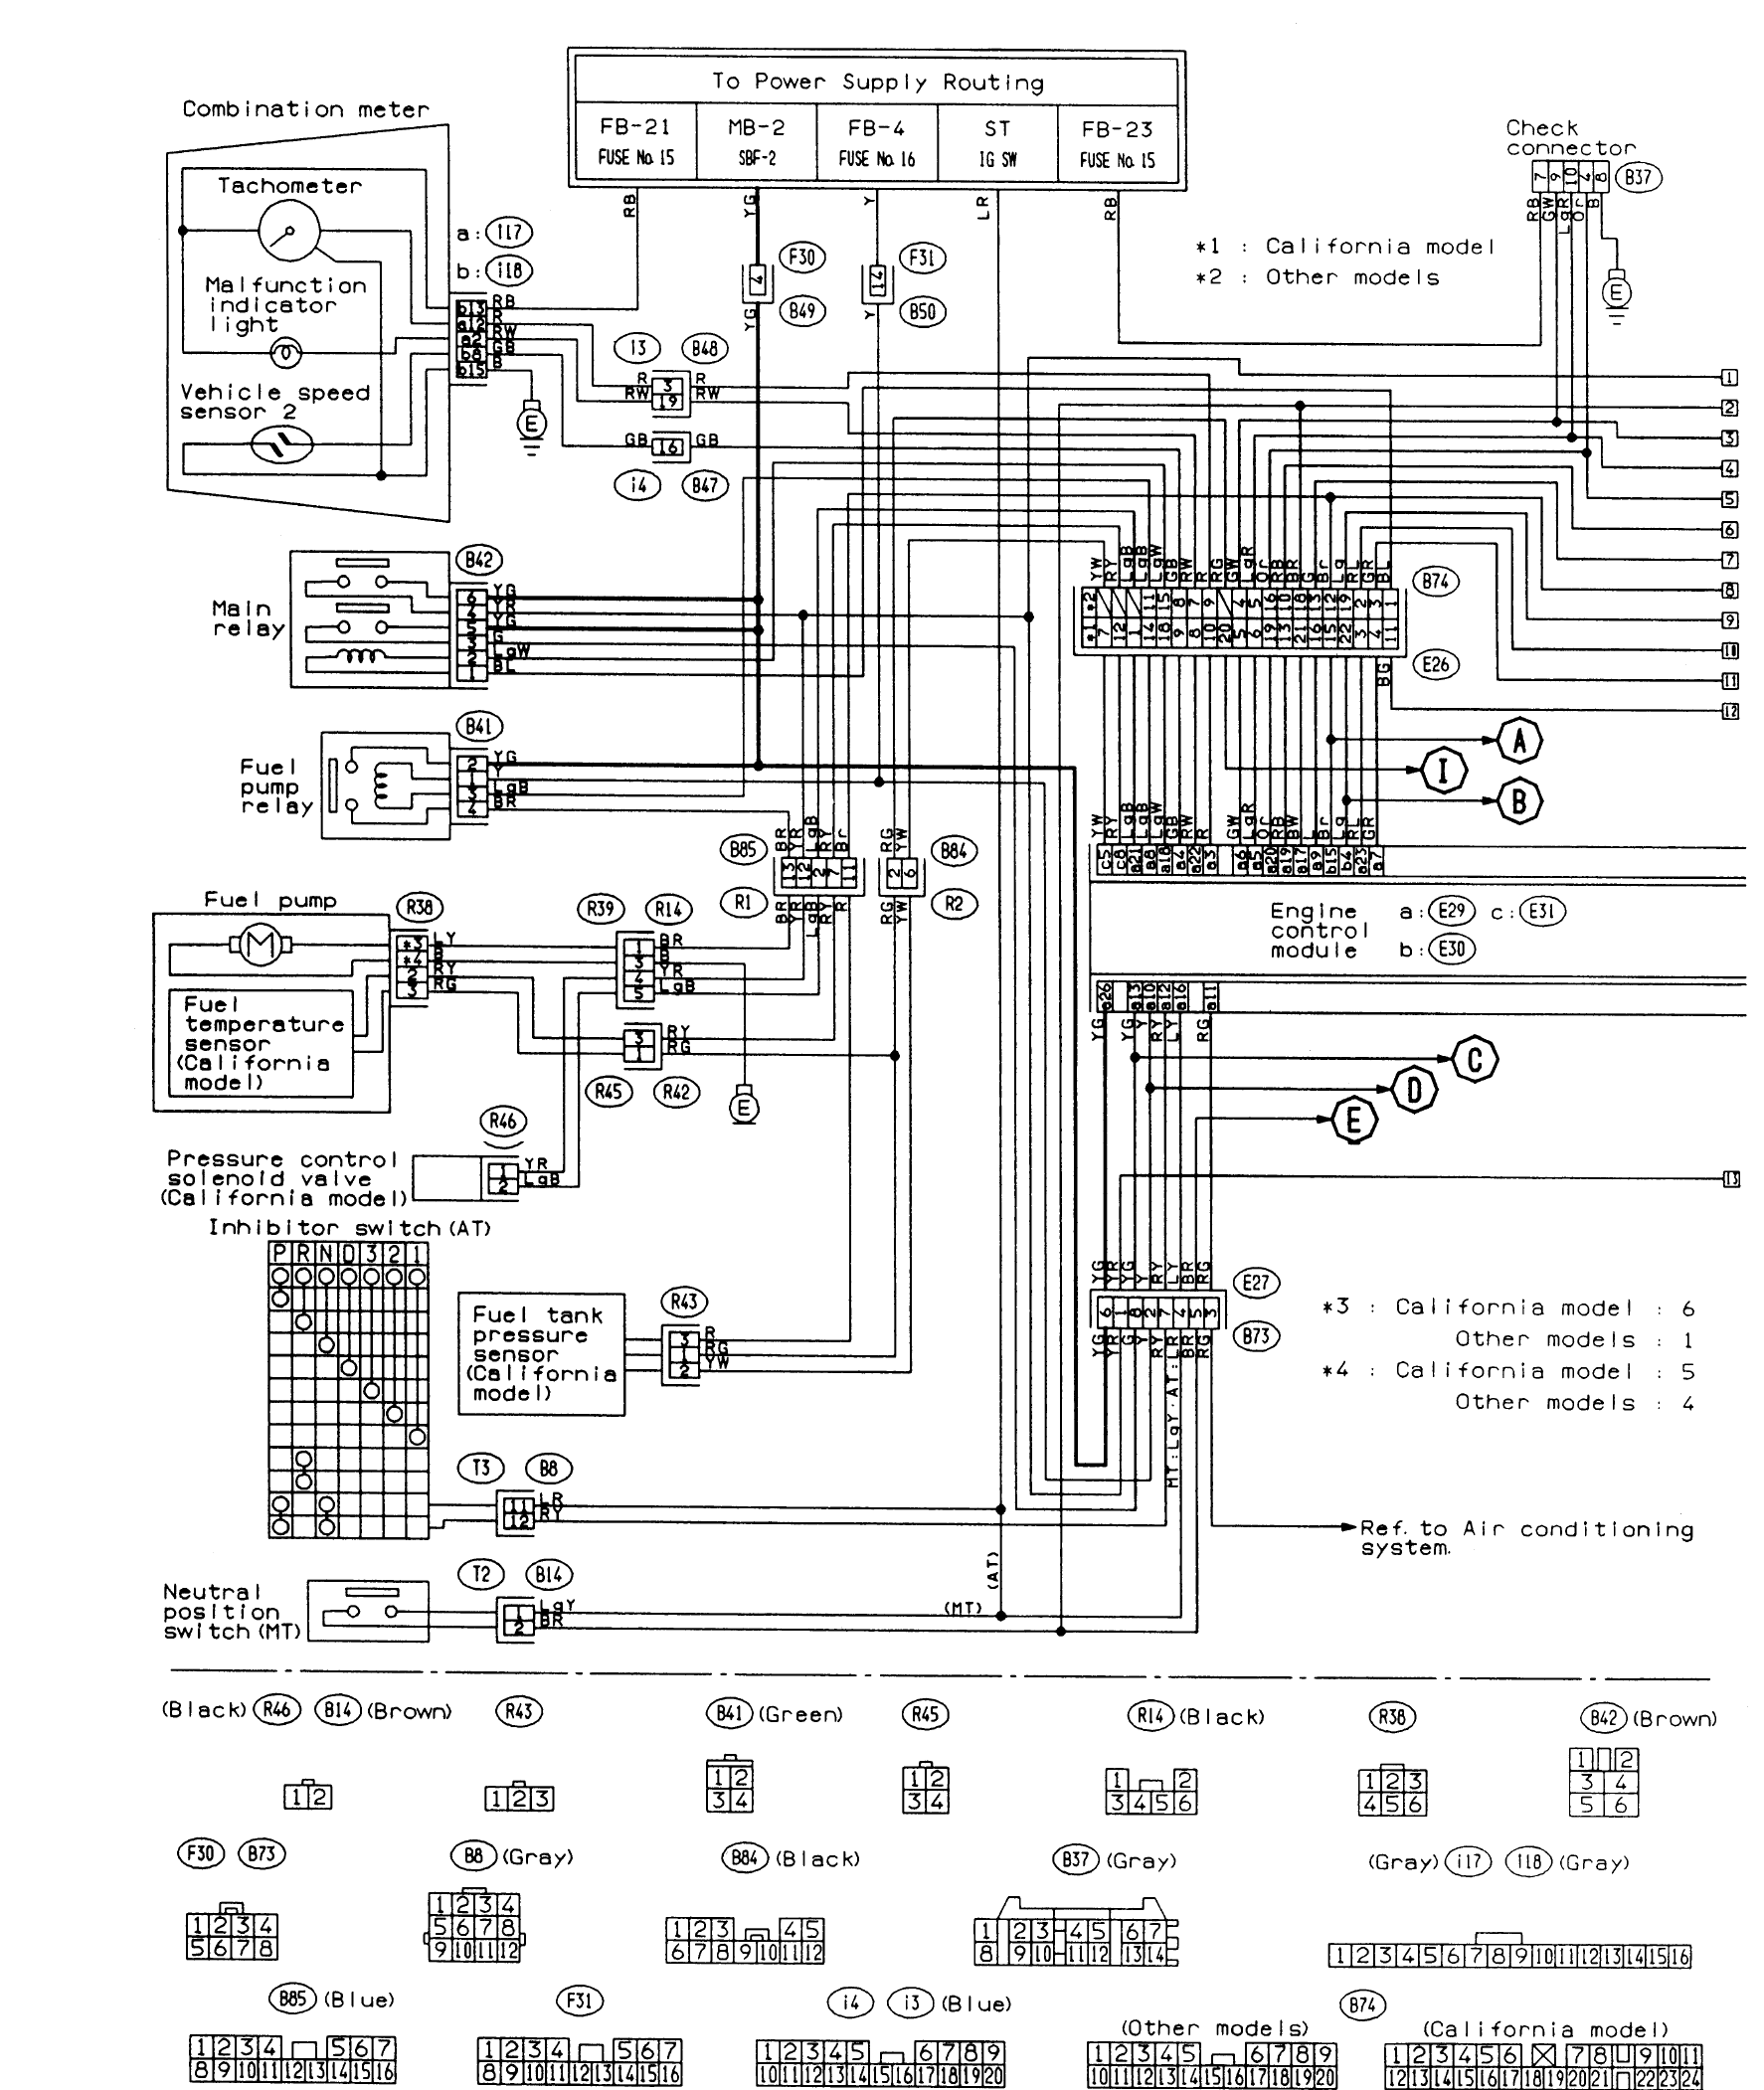 electrical diagram for ac unit in 2009 subaru forester pinouts for Subaru Forester Trailer Wiring